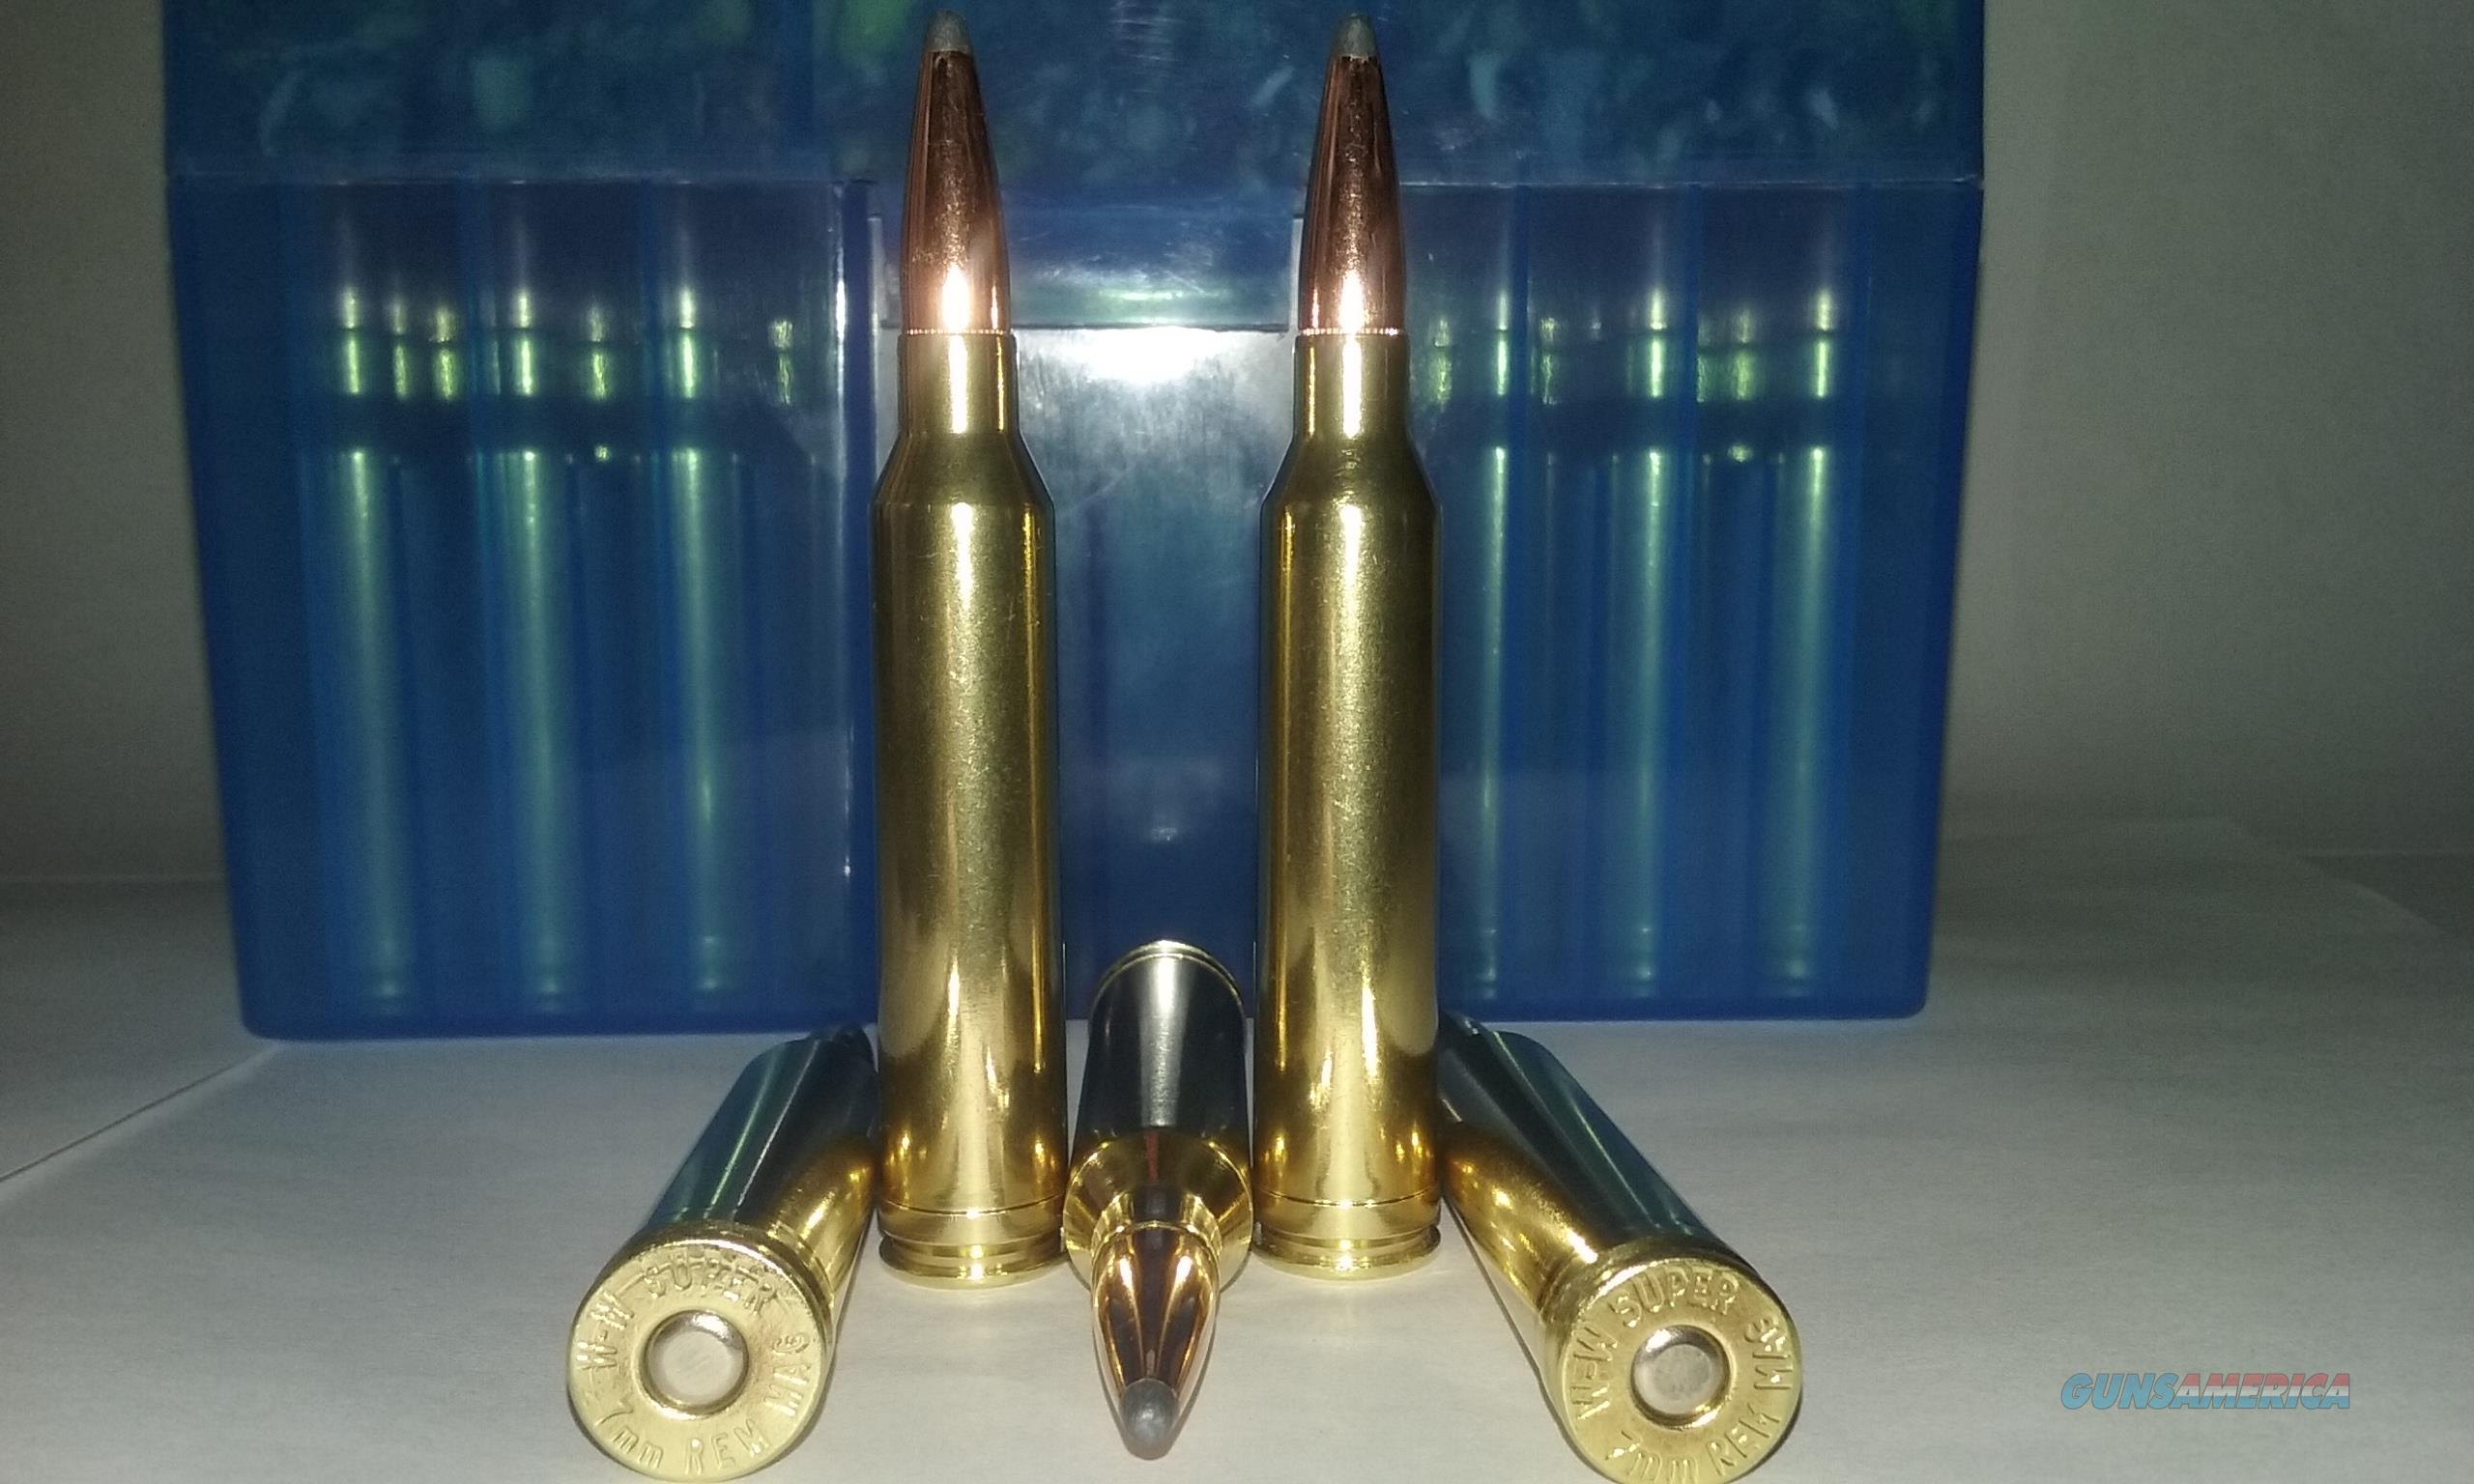 7mm Remington Magnum Ammo.  Non-Guns > Ammunition